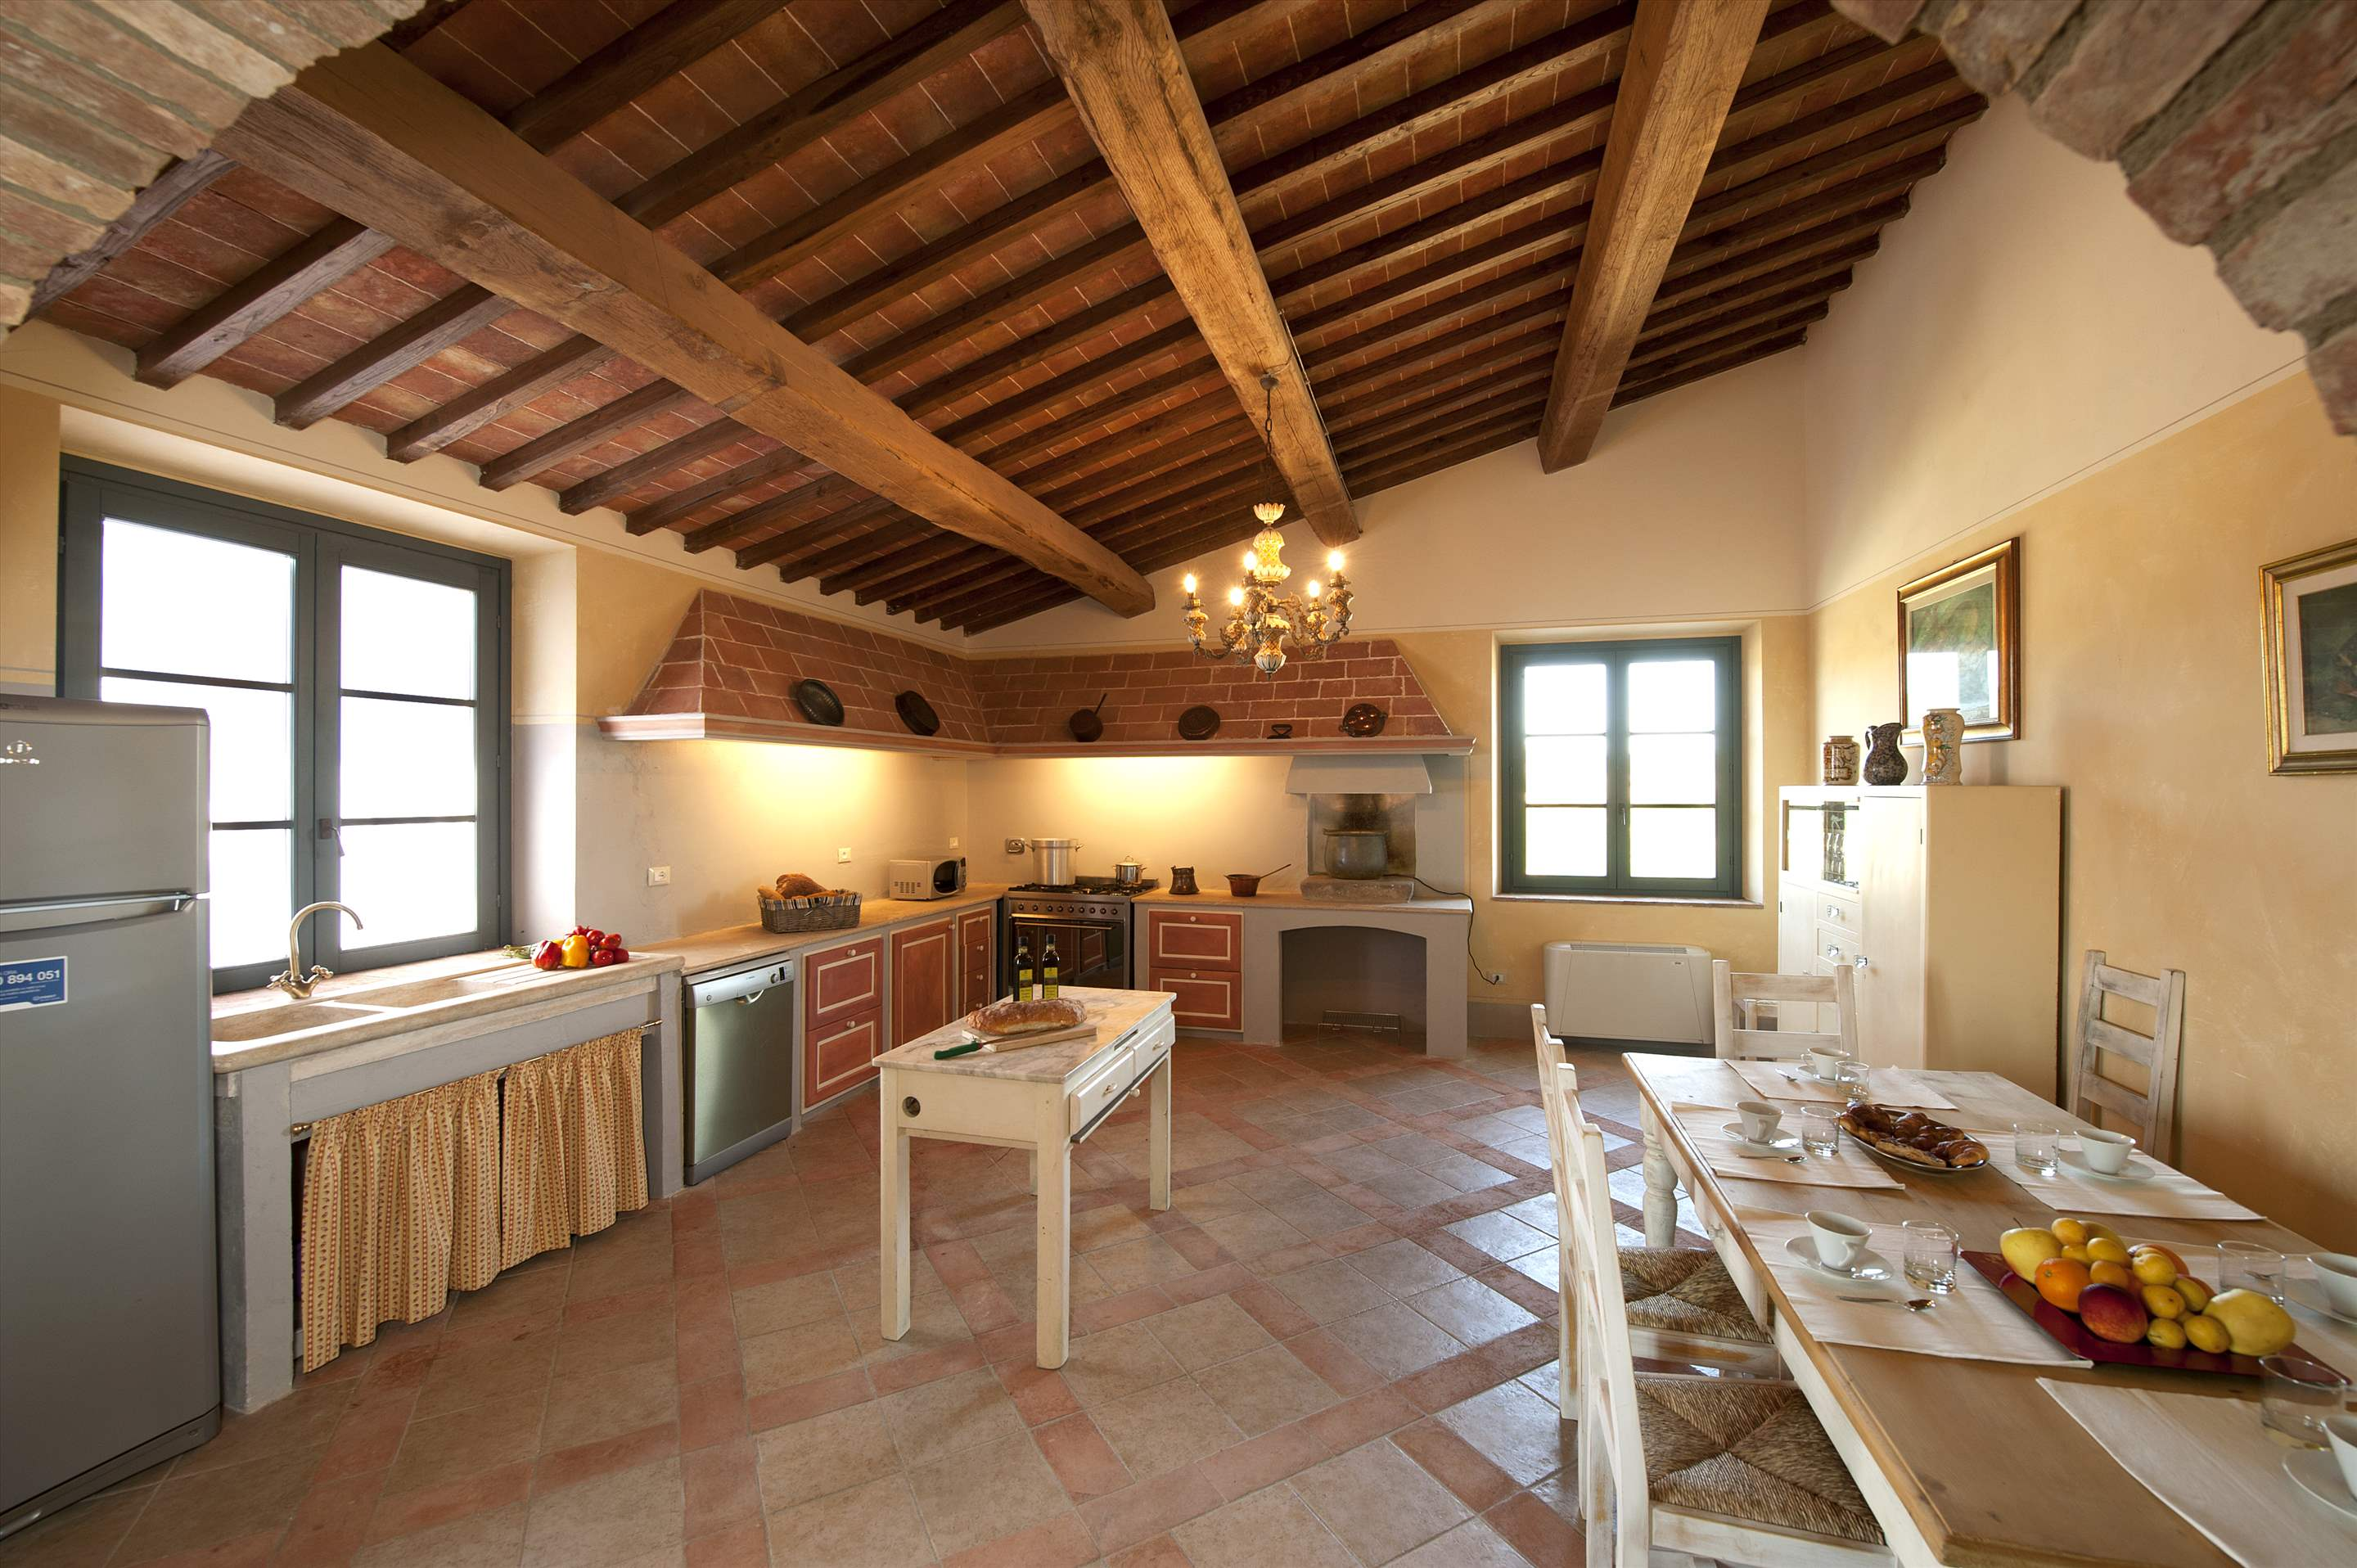 Podere Casacce, Ground Floor, 4 bedroom villa in Tuscany Coast, Tuscany Photo #15